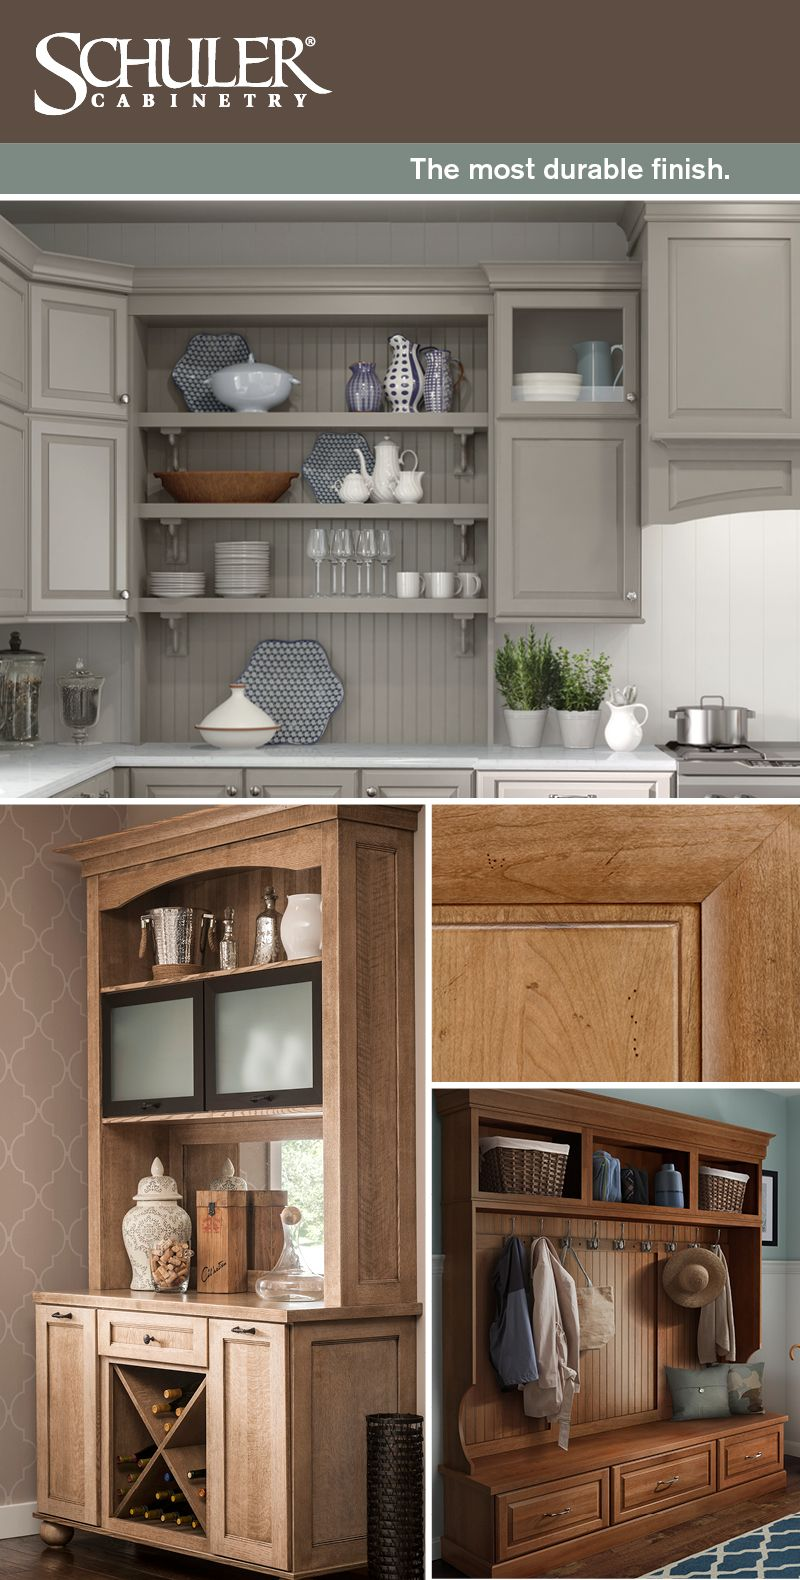 The Most Durable Finish Builttolast Messymoments Wehavebeenthere Bringiton Sharpieisnomatch Schulerexclusive Cabinetry Lowes Kitchen Cabinets